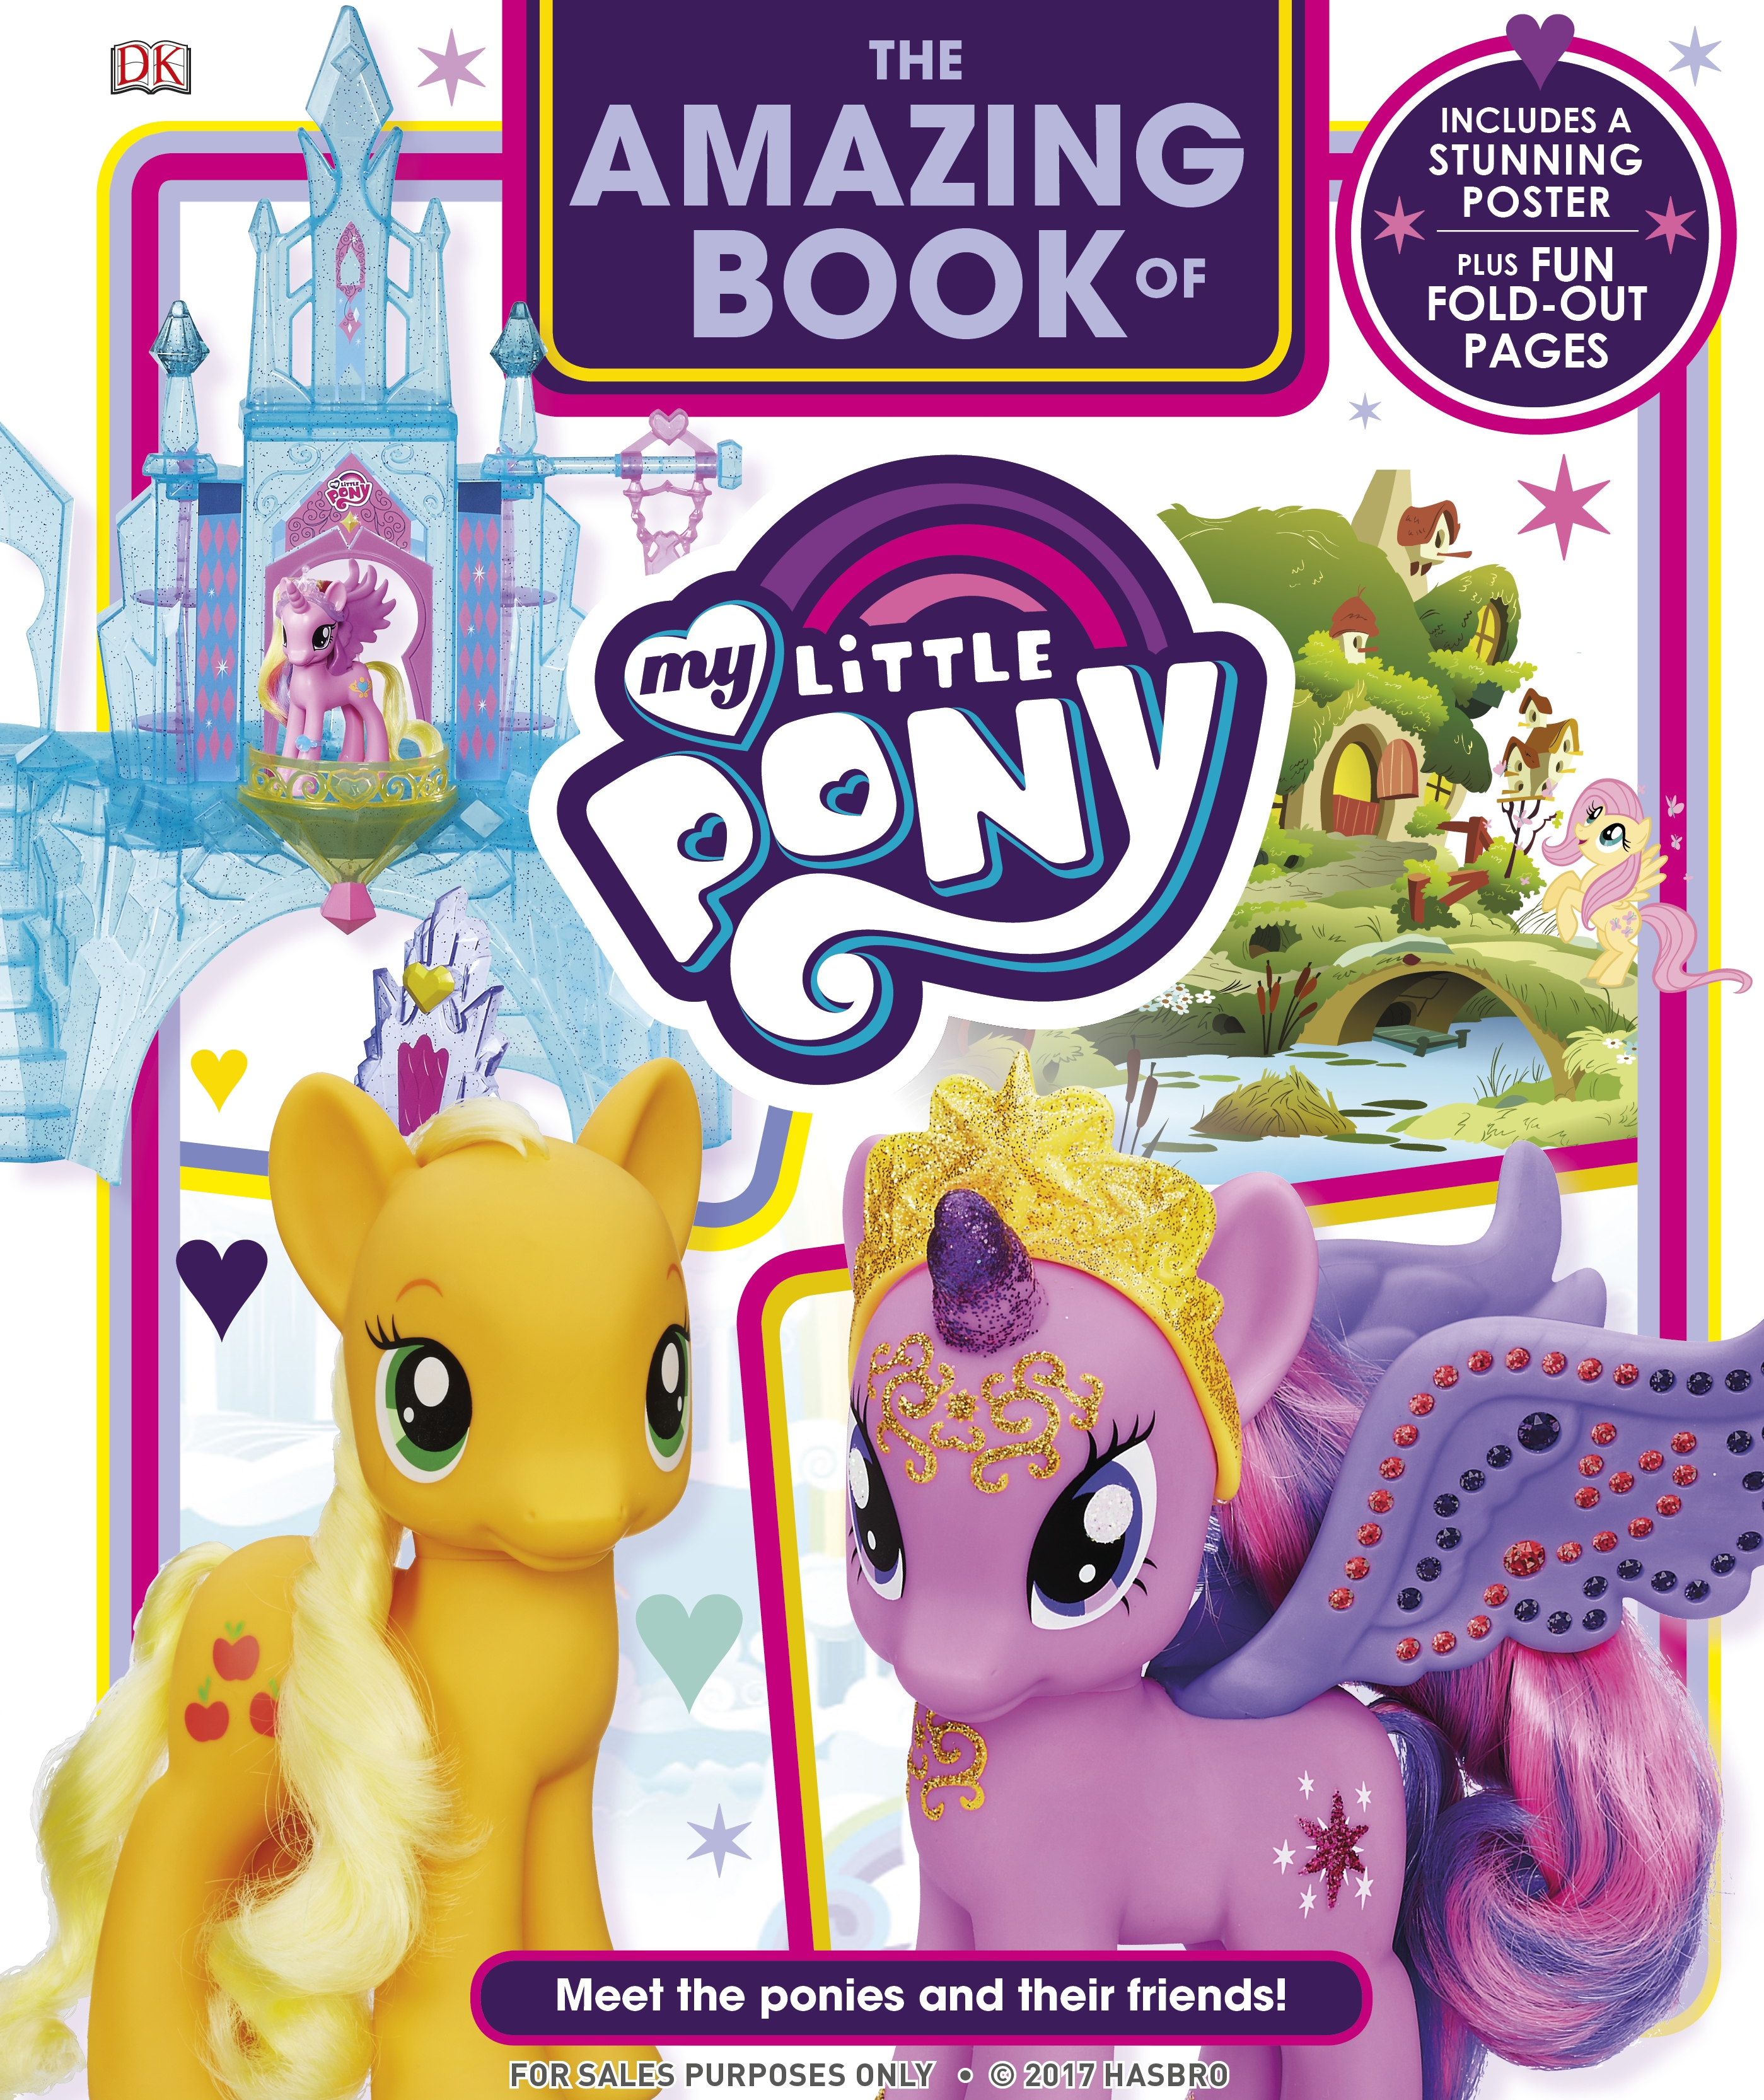 the amazing book of my little pony by dk penguin books australia. Black Bedroom Furniture Sets. Home Design Ideas